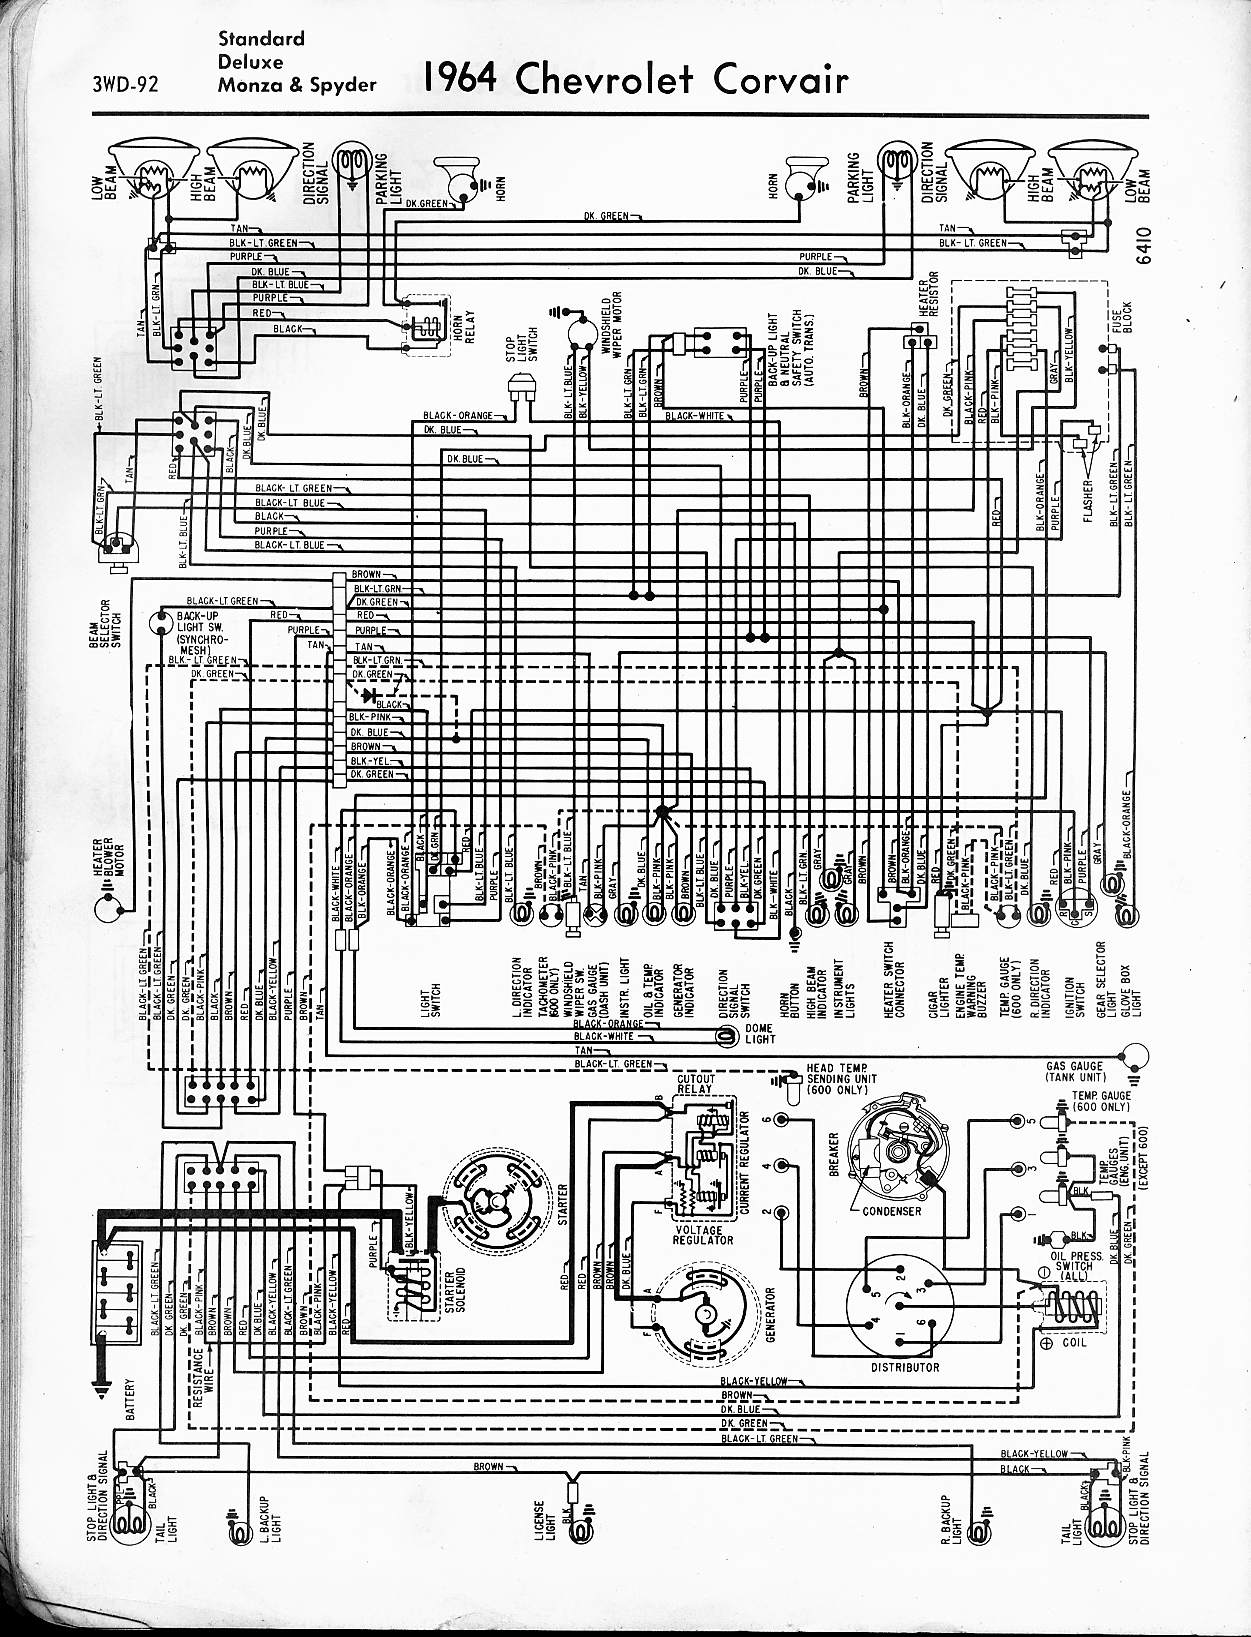 1963 Chevy Impala Ss Wiring Harness Guide And Troubleshooting Of 68 C10 64 Diagram Todays Rh 20 8 9 1813weddingbarn Com 1968 For 1964